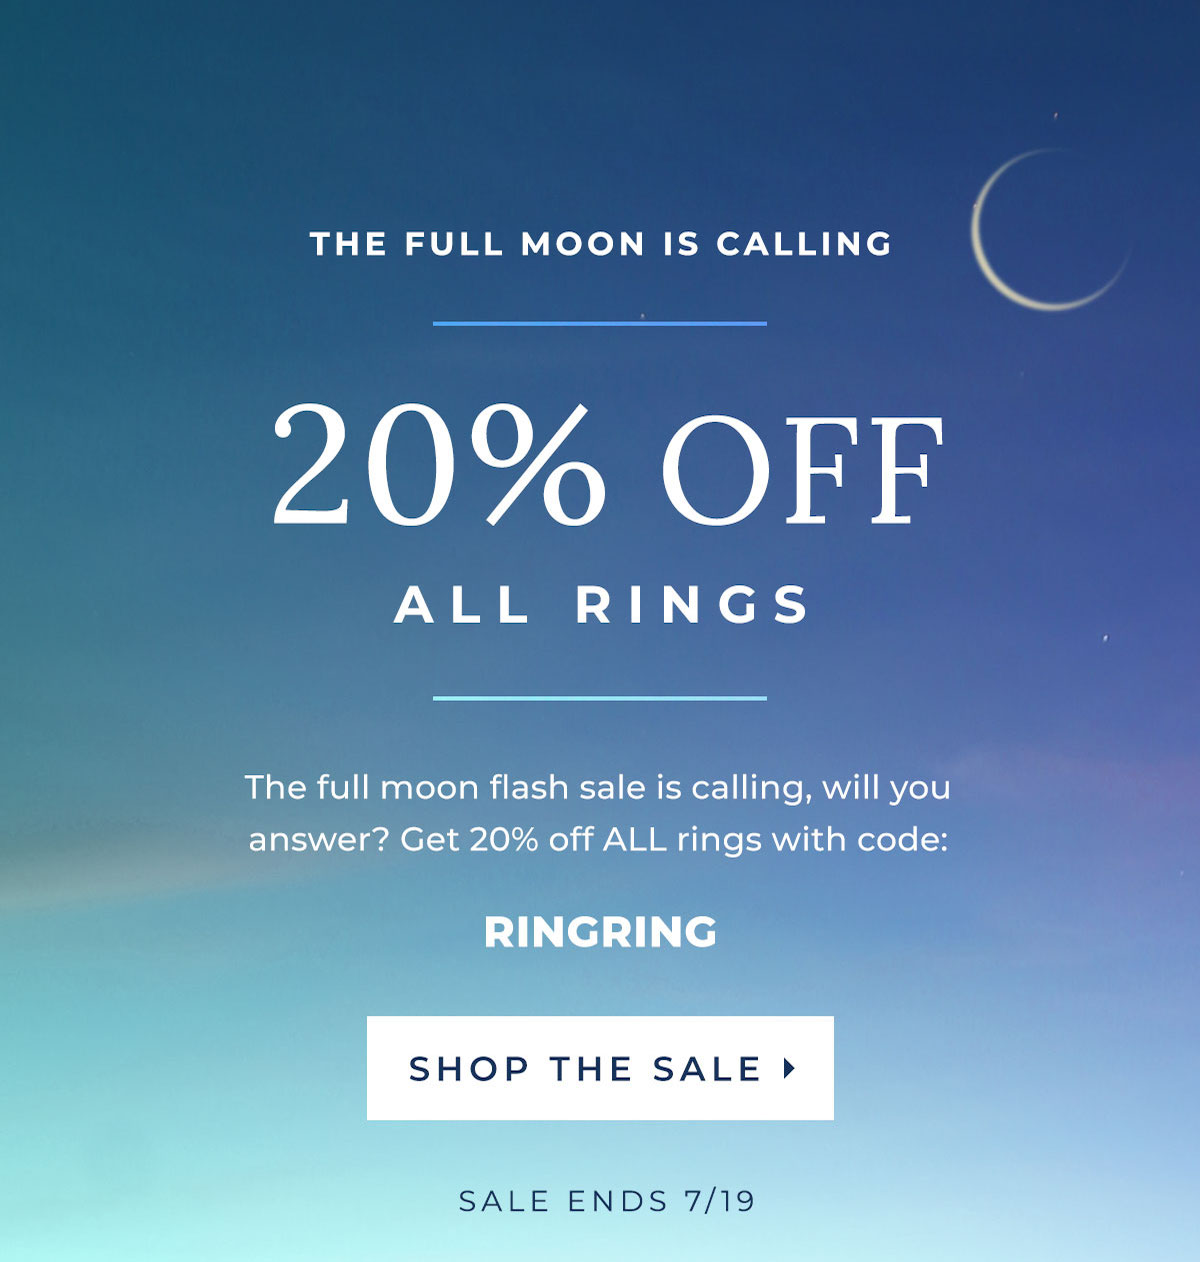 The Full Moon is Calling - 20% OFF ALL RINGS - The full flash sale is calling, will you answer? Get 20% off ALL rings with code RINGRING - SHOP THE SALE | ENDS 7/19